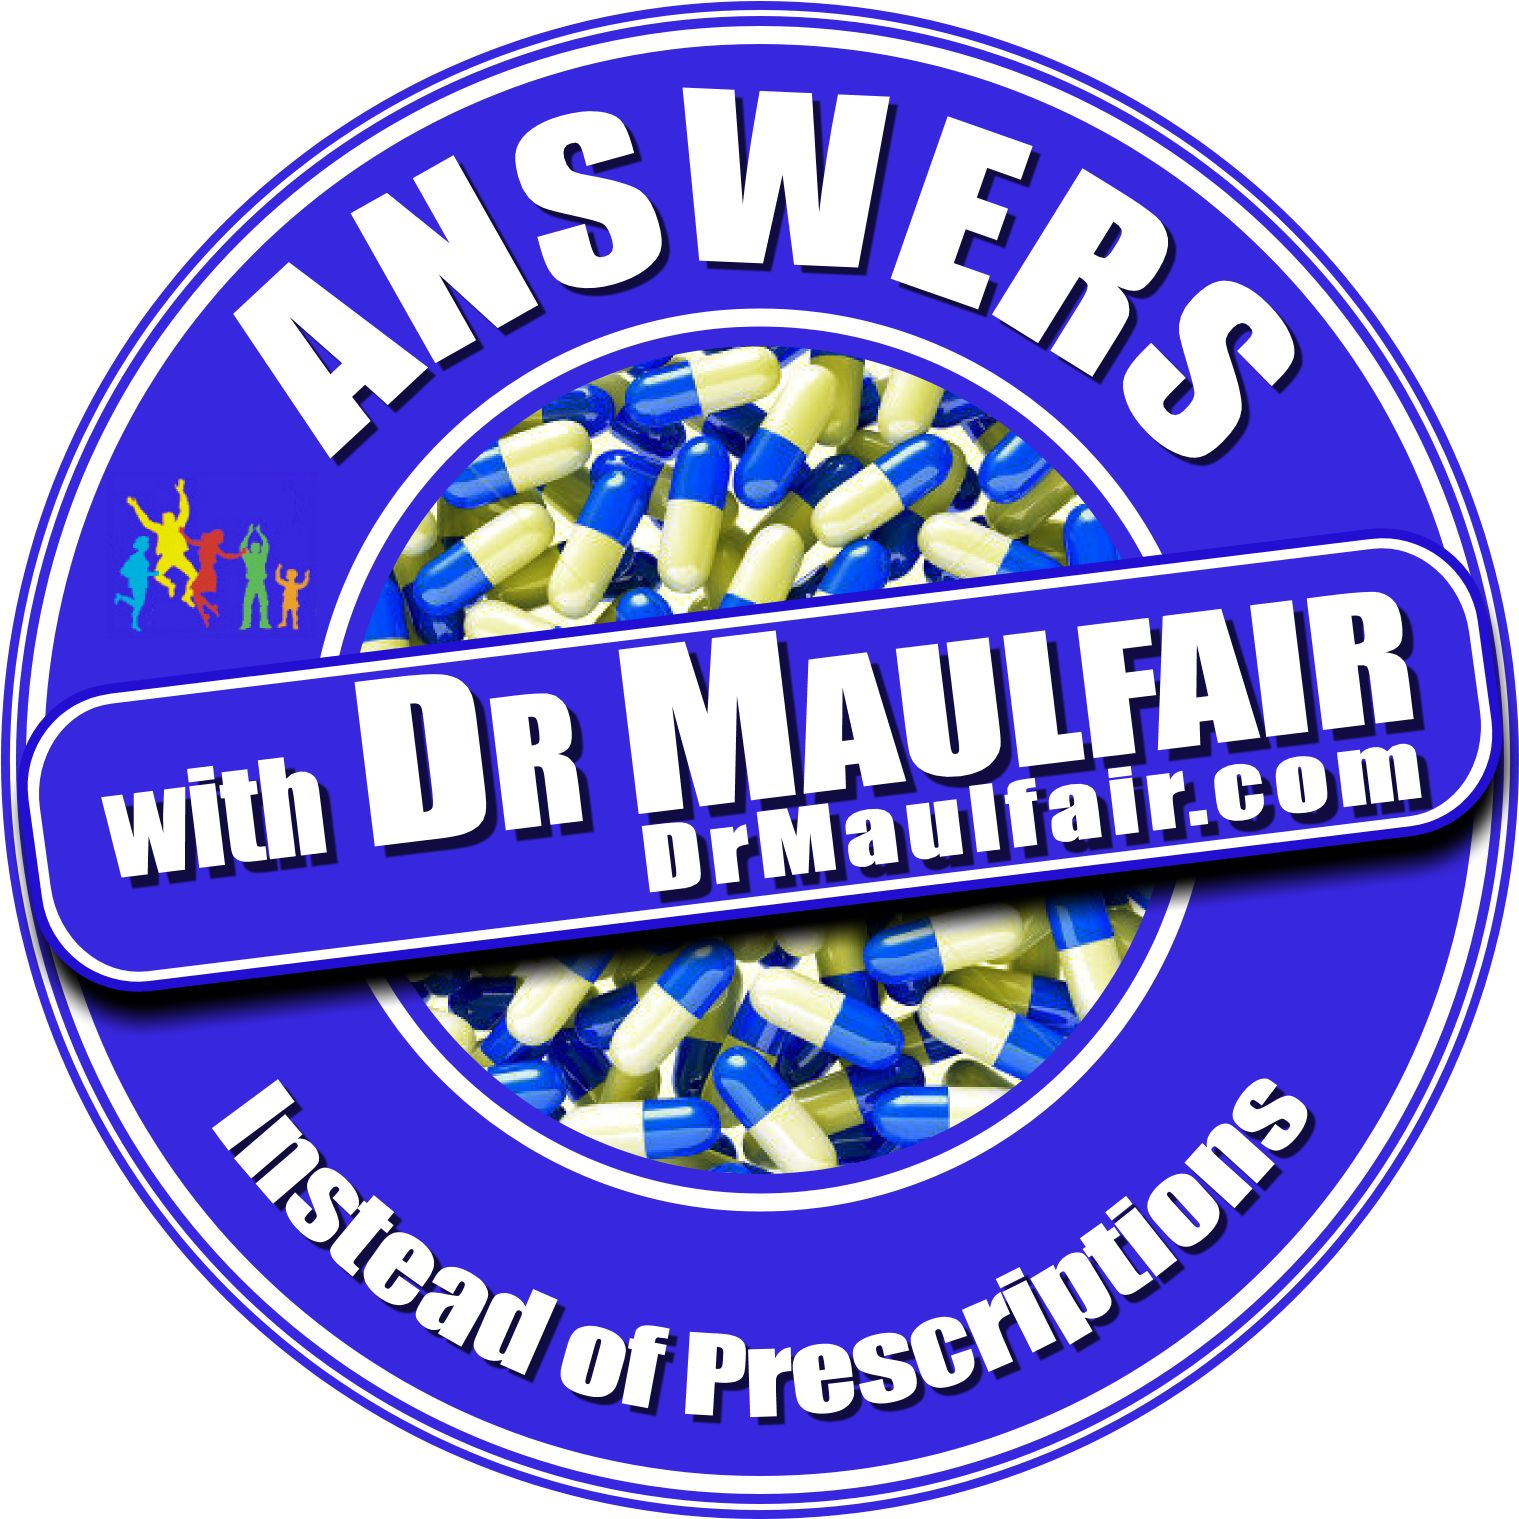 Answers Instead of Prescriptions